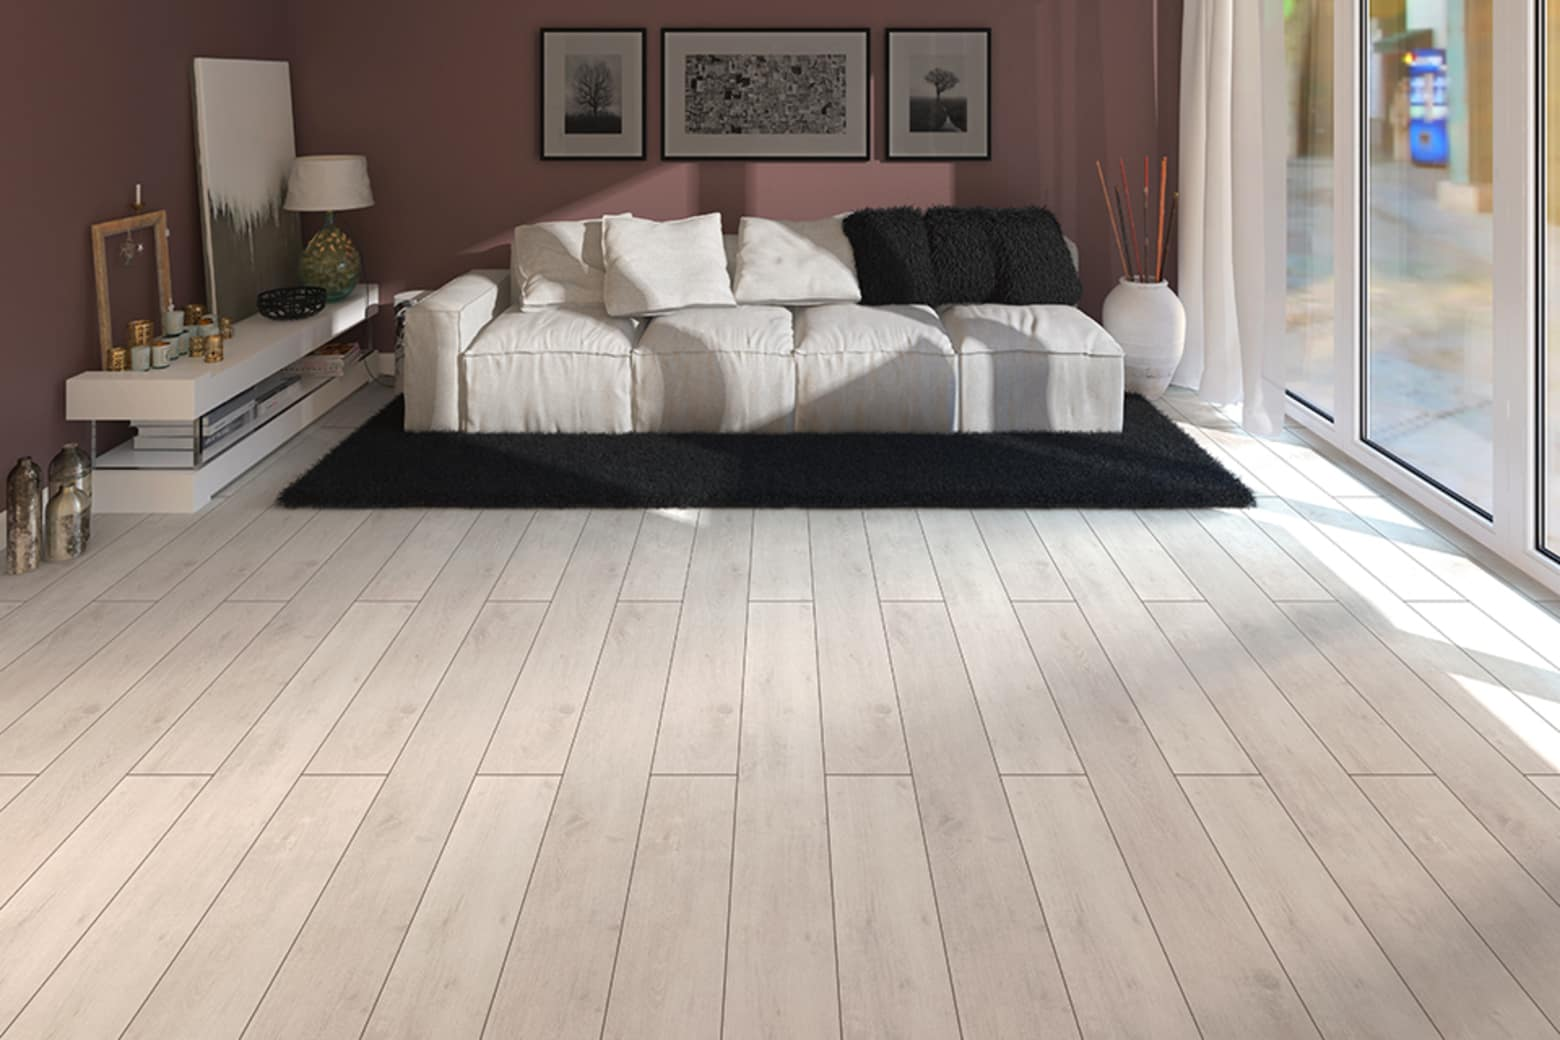 Everest White Oak Light Laminate Flooring 8mm By 193mm By